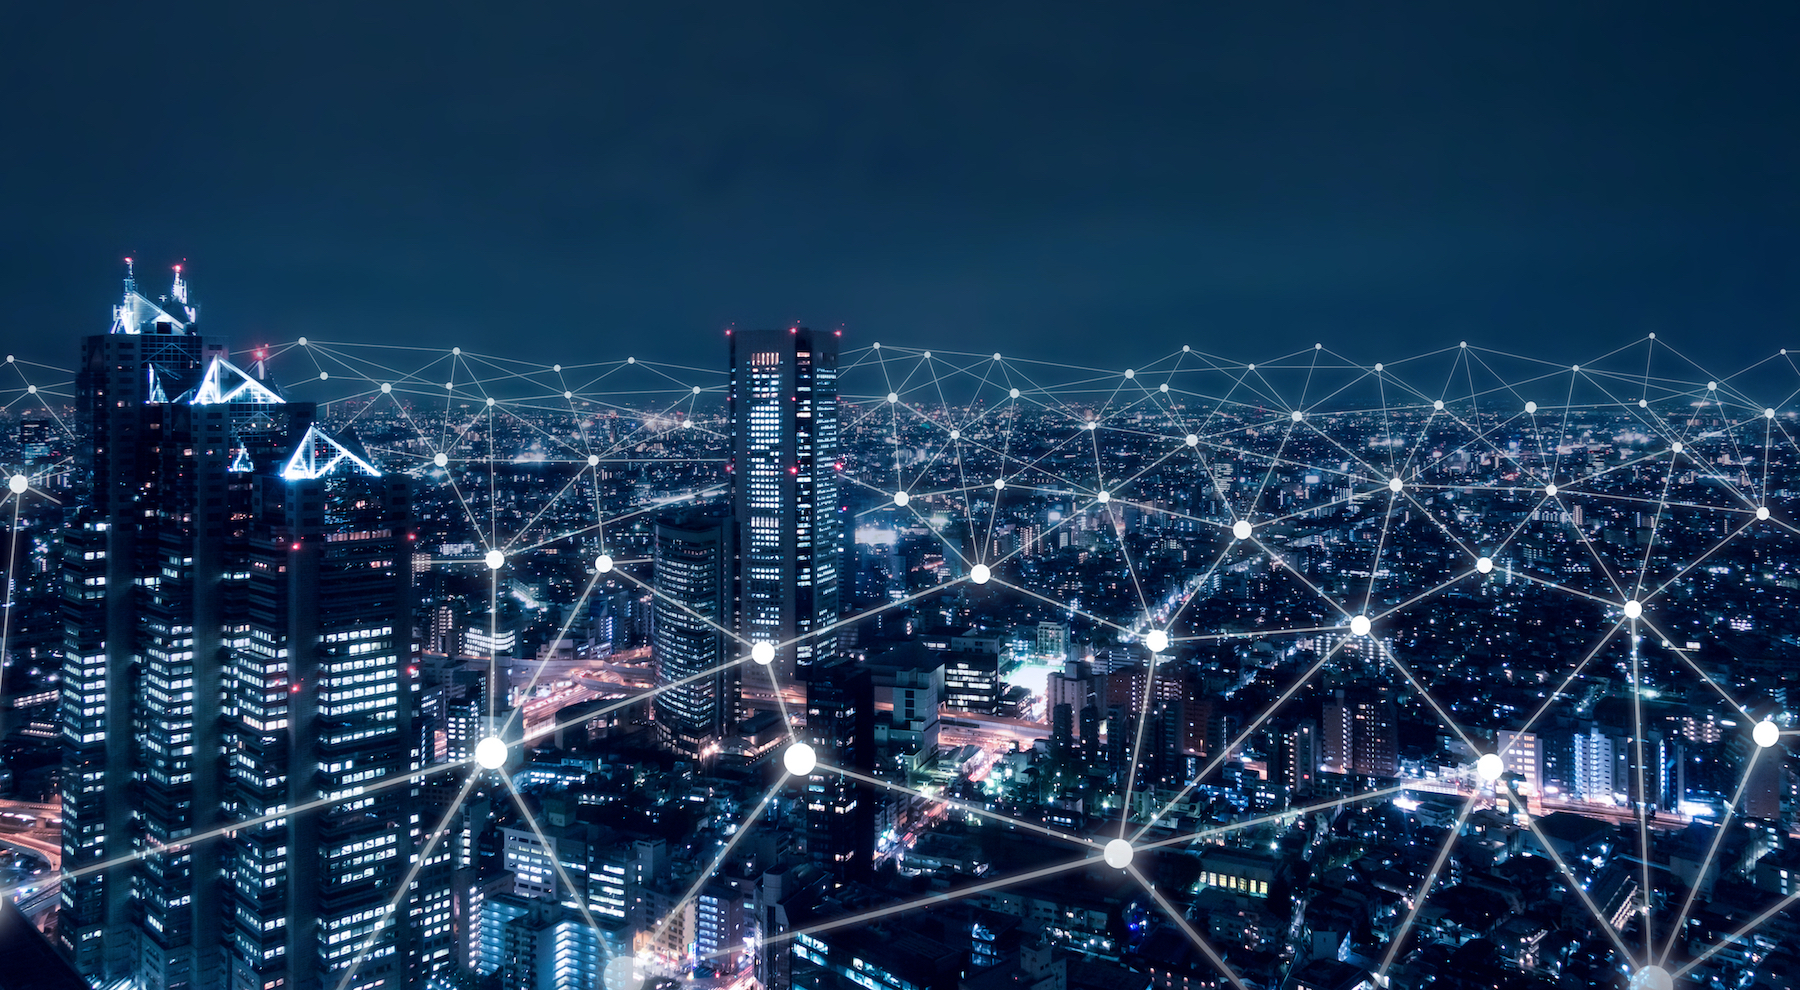 Abstract view of data and a city